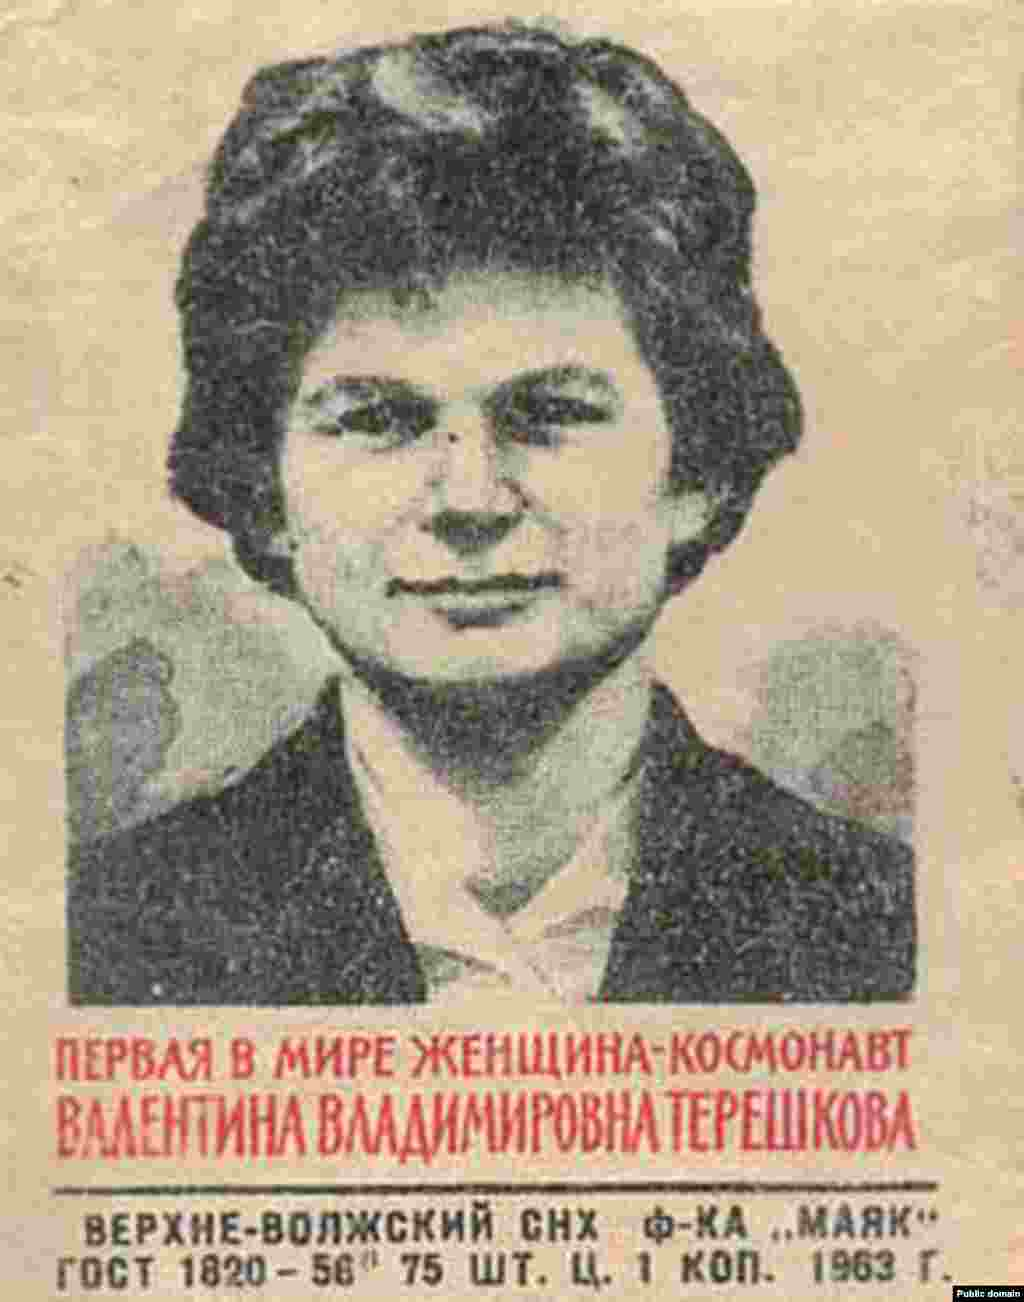 A matchbox label from 1963 featured a portrait of Tereshkova.